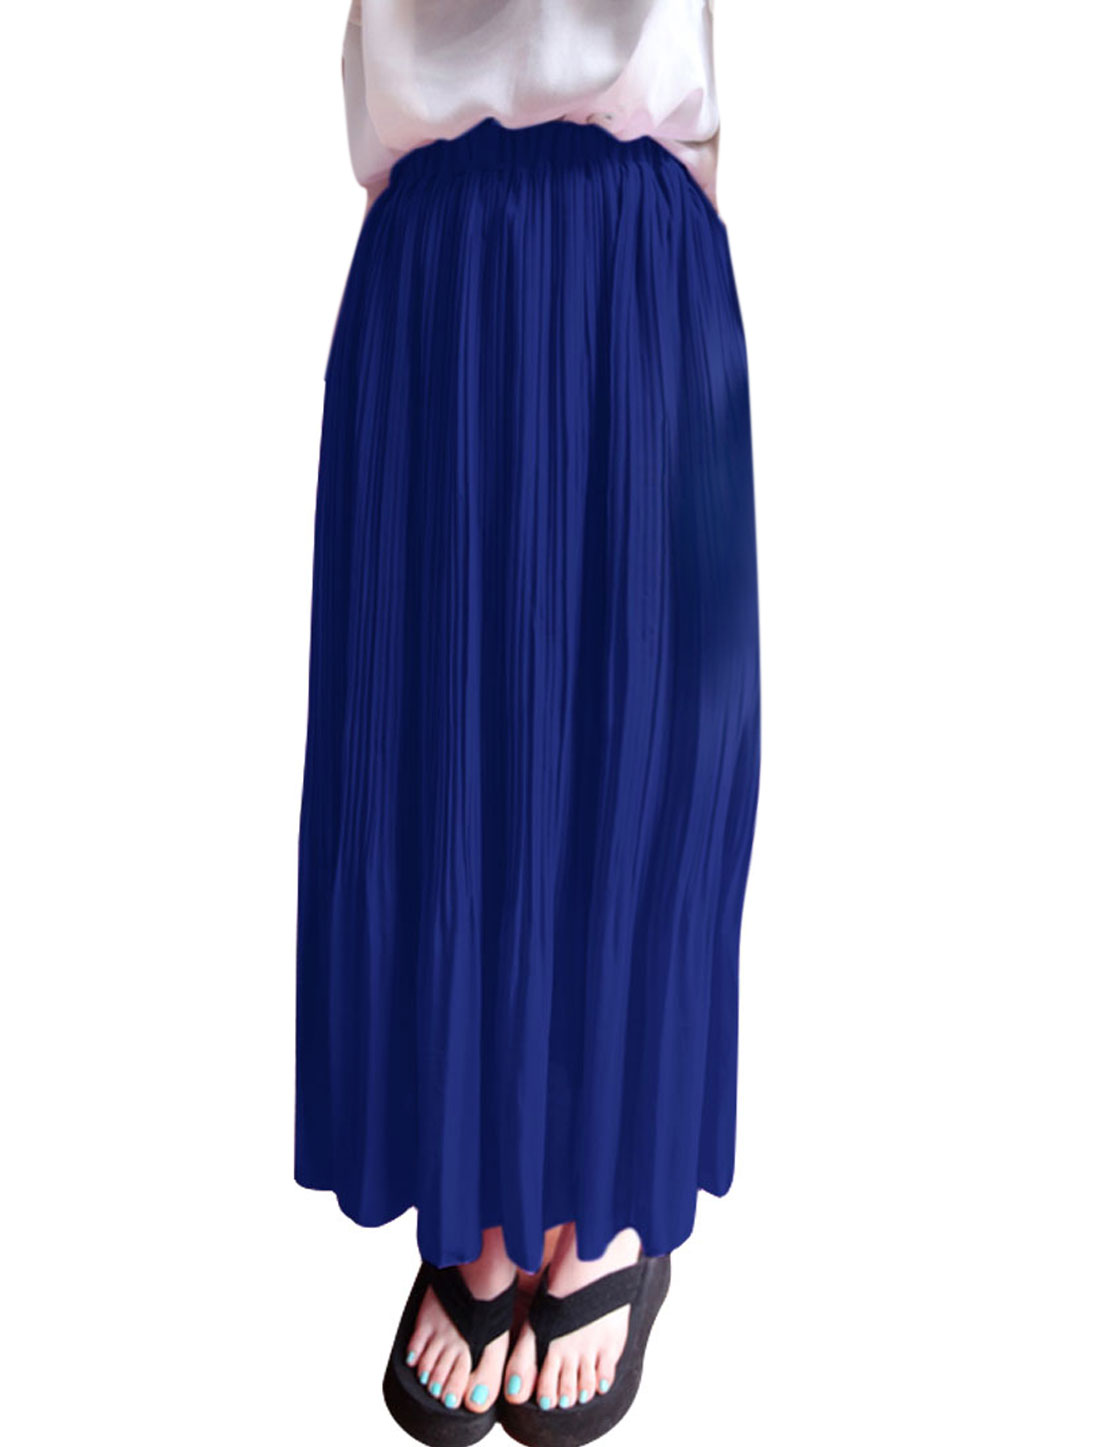 Ladies Elastic Waist Pleated Semi Sheer Casual Skirt Royal Blue XS